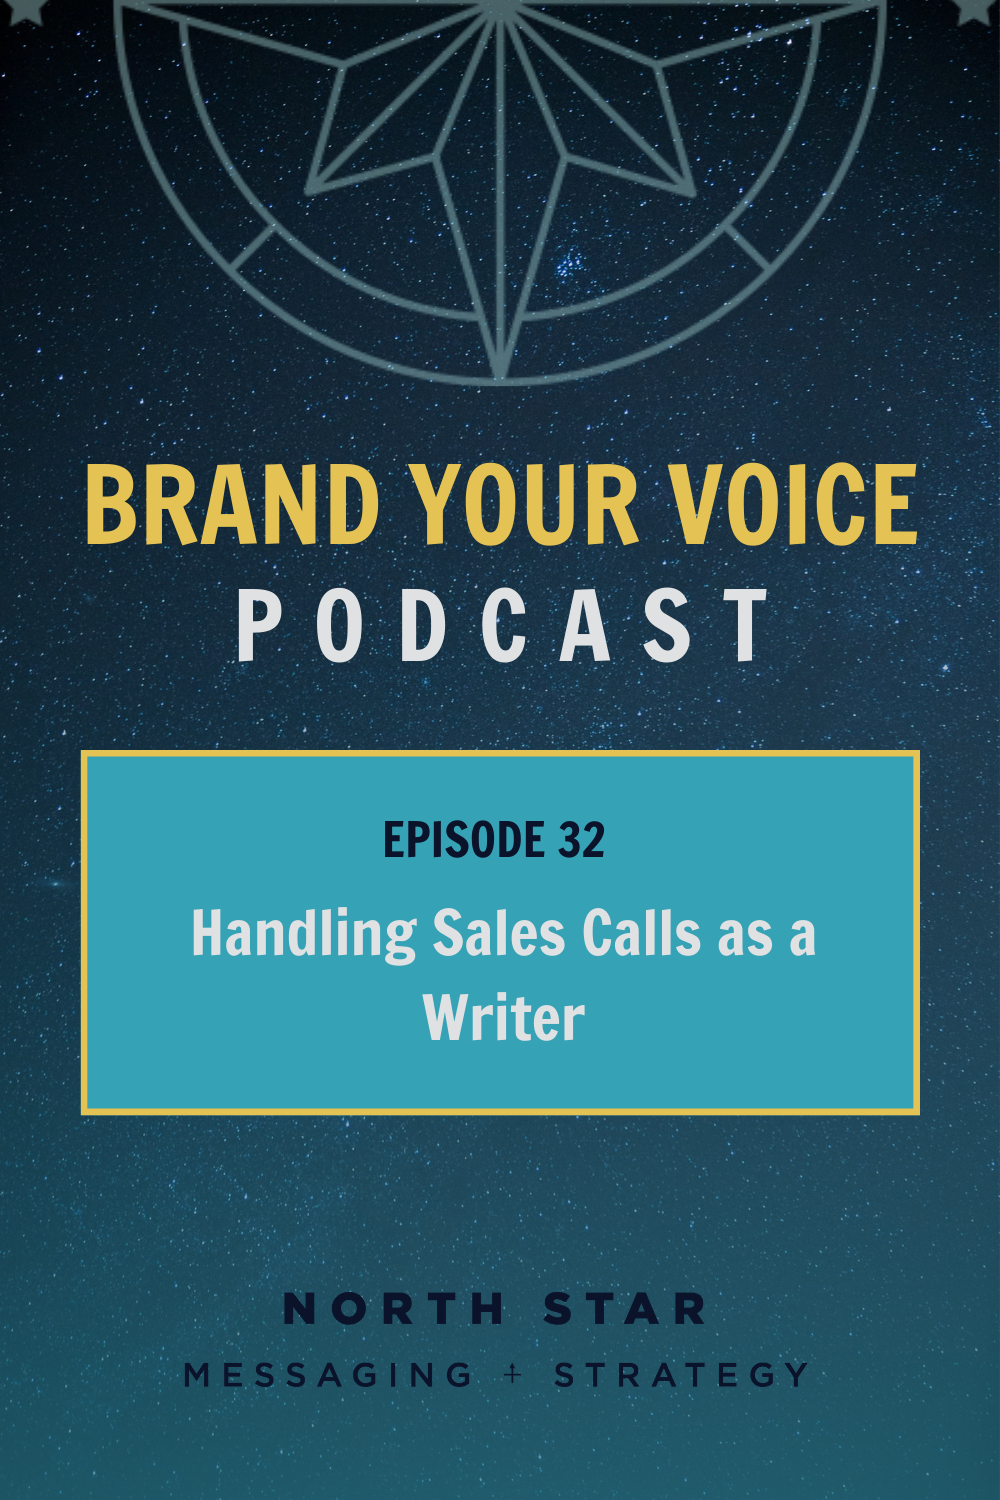 EPISODE 32: Handling Sales Calls as a Writer